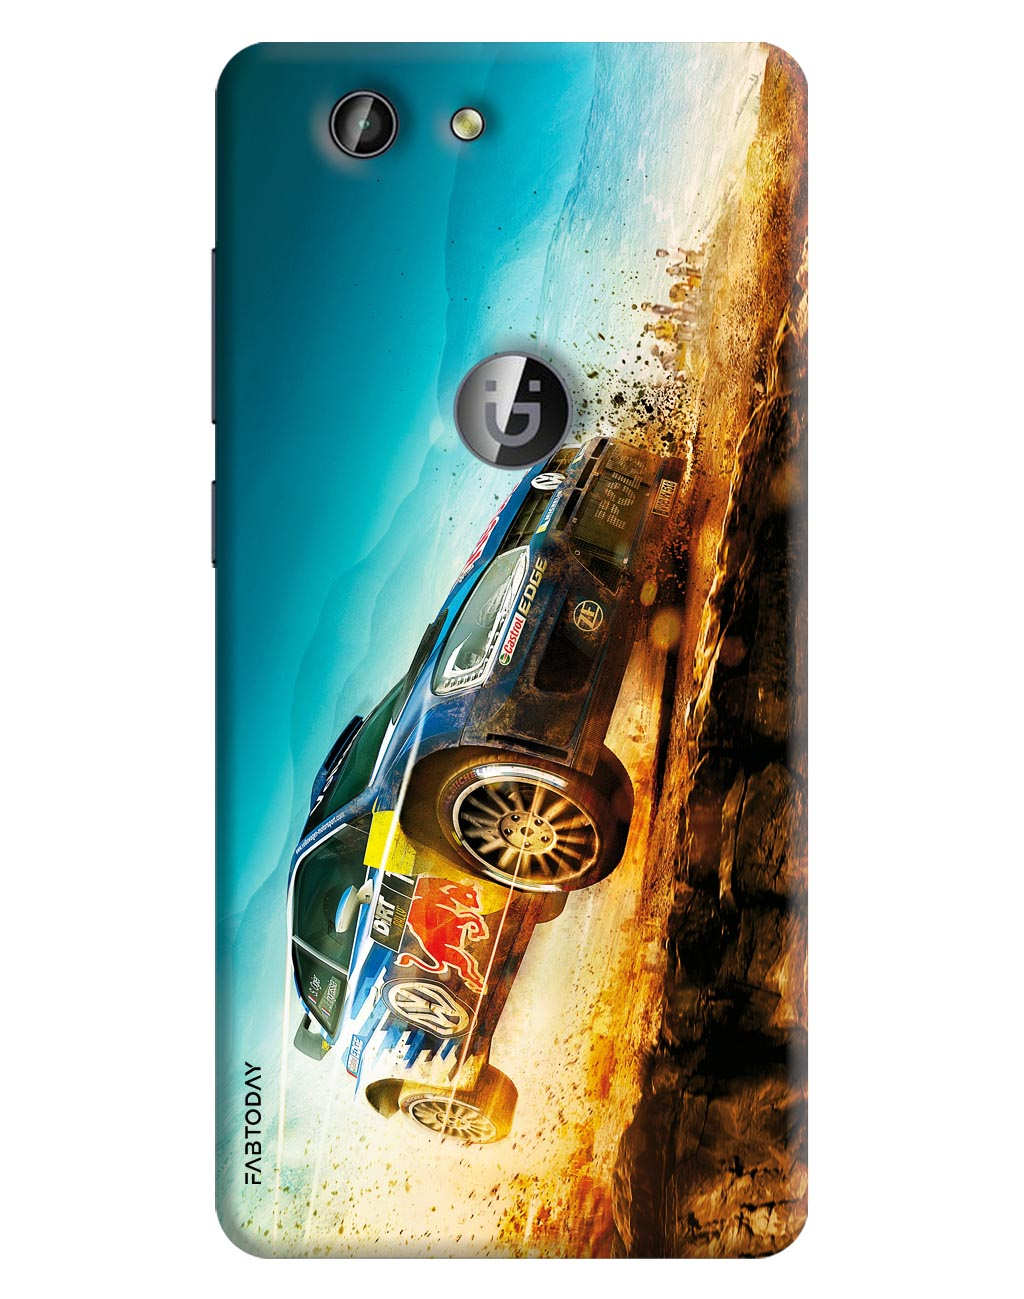 Cars Back Cover for Gionee F103 Pro